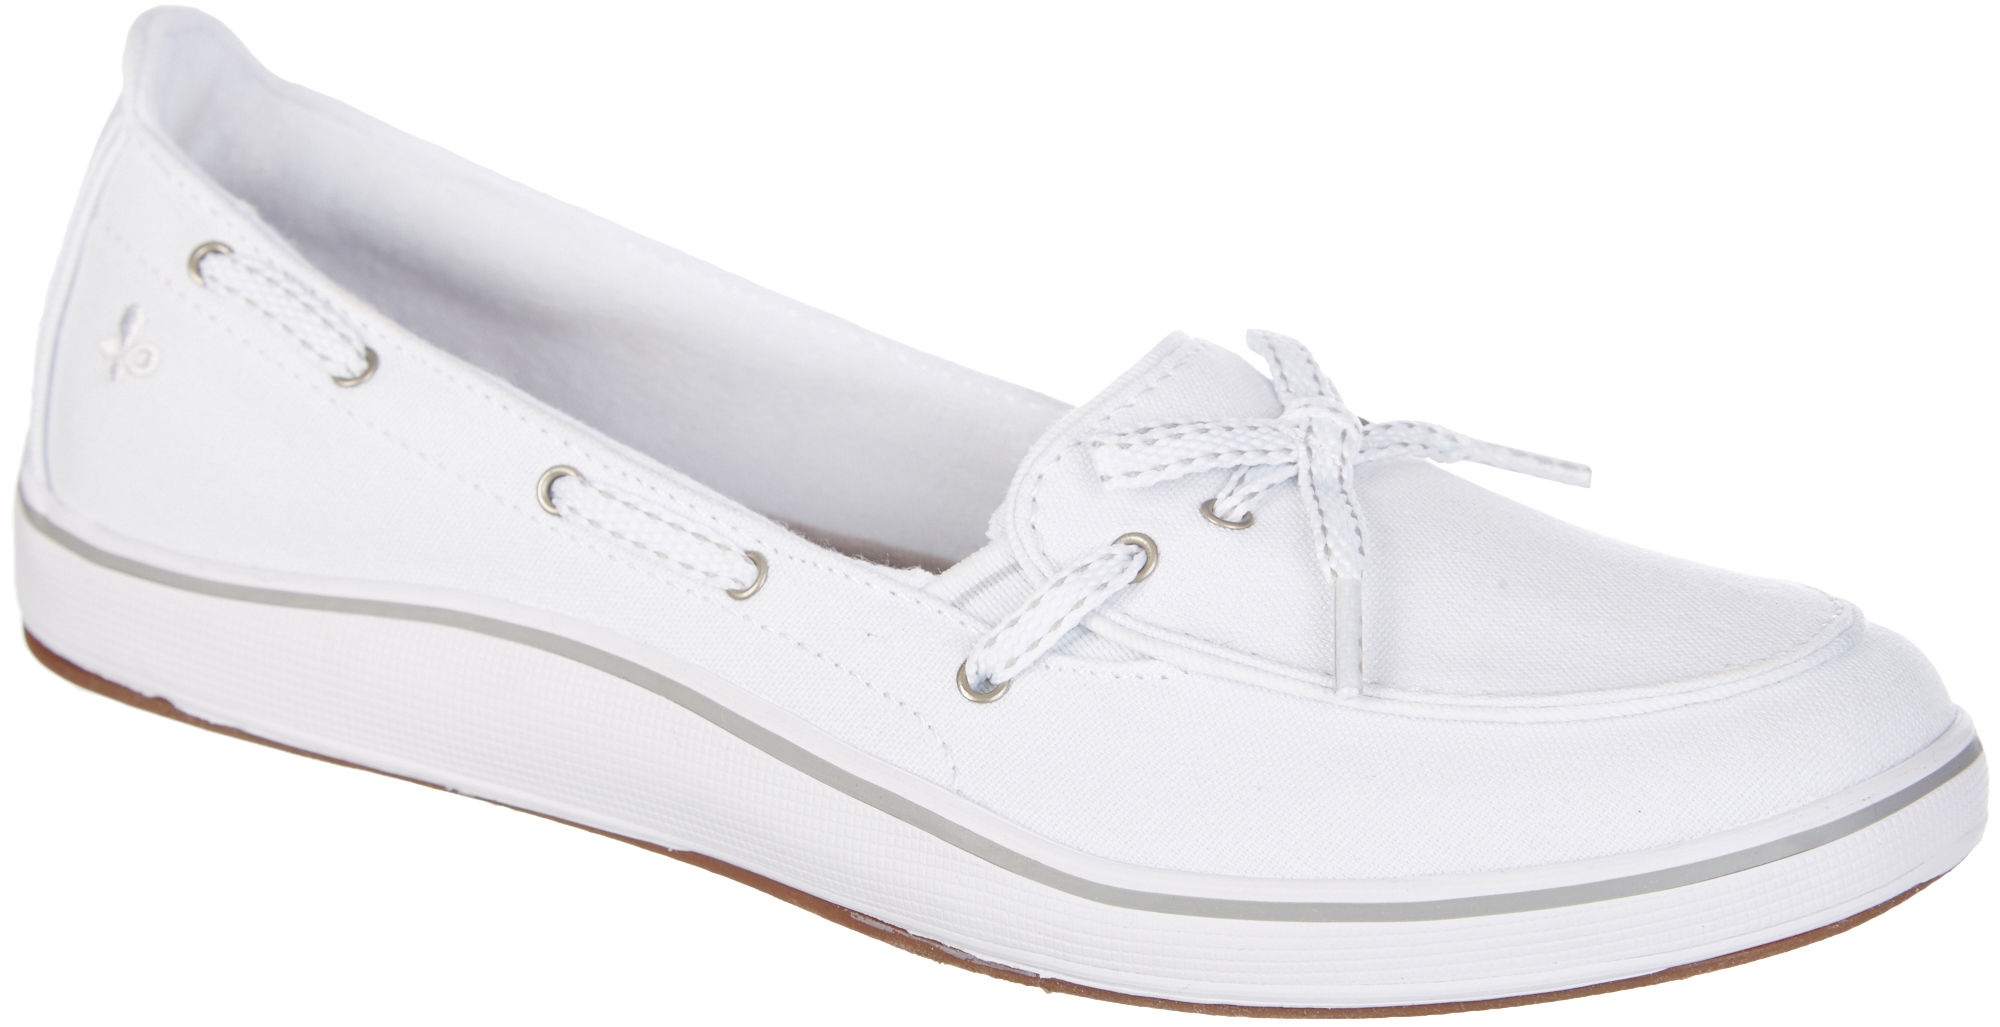 Grasshoppers Windham Slip On Shoes